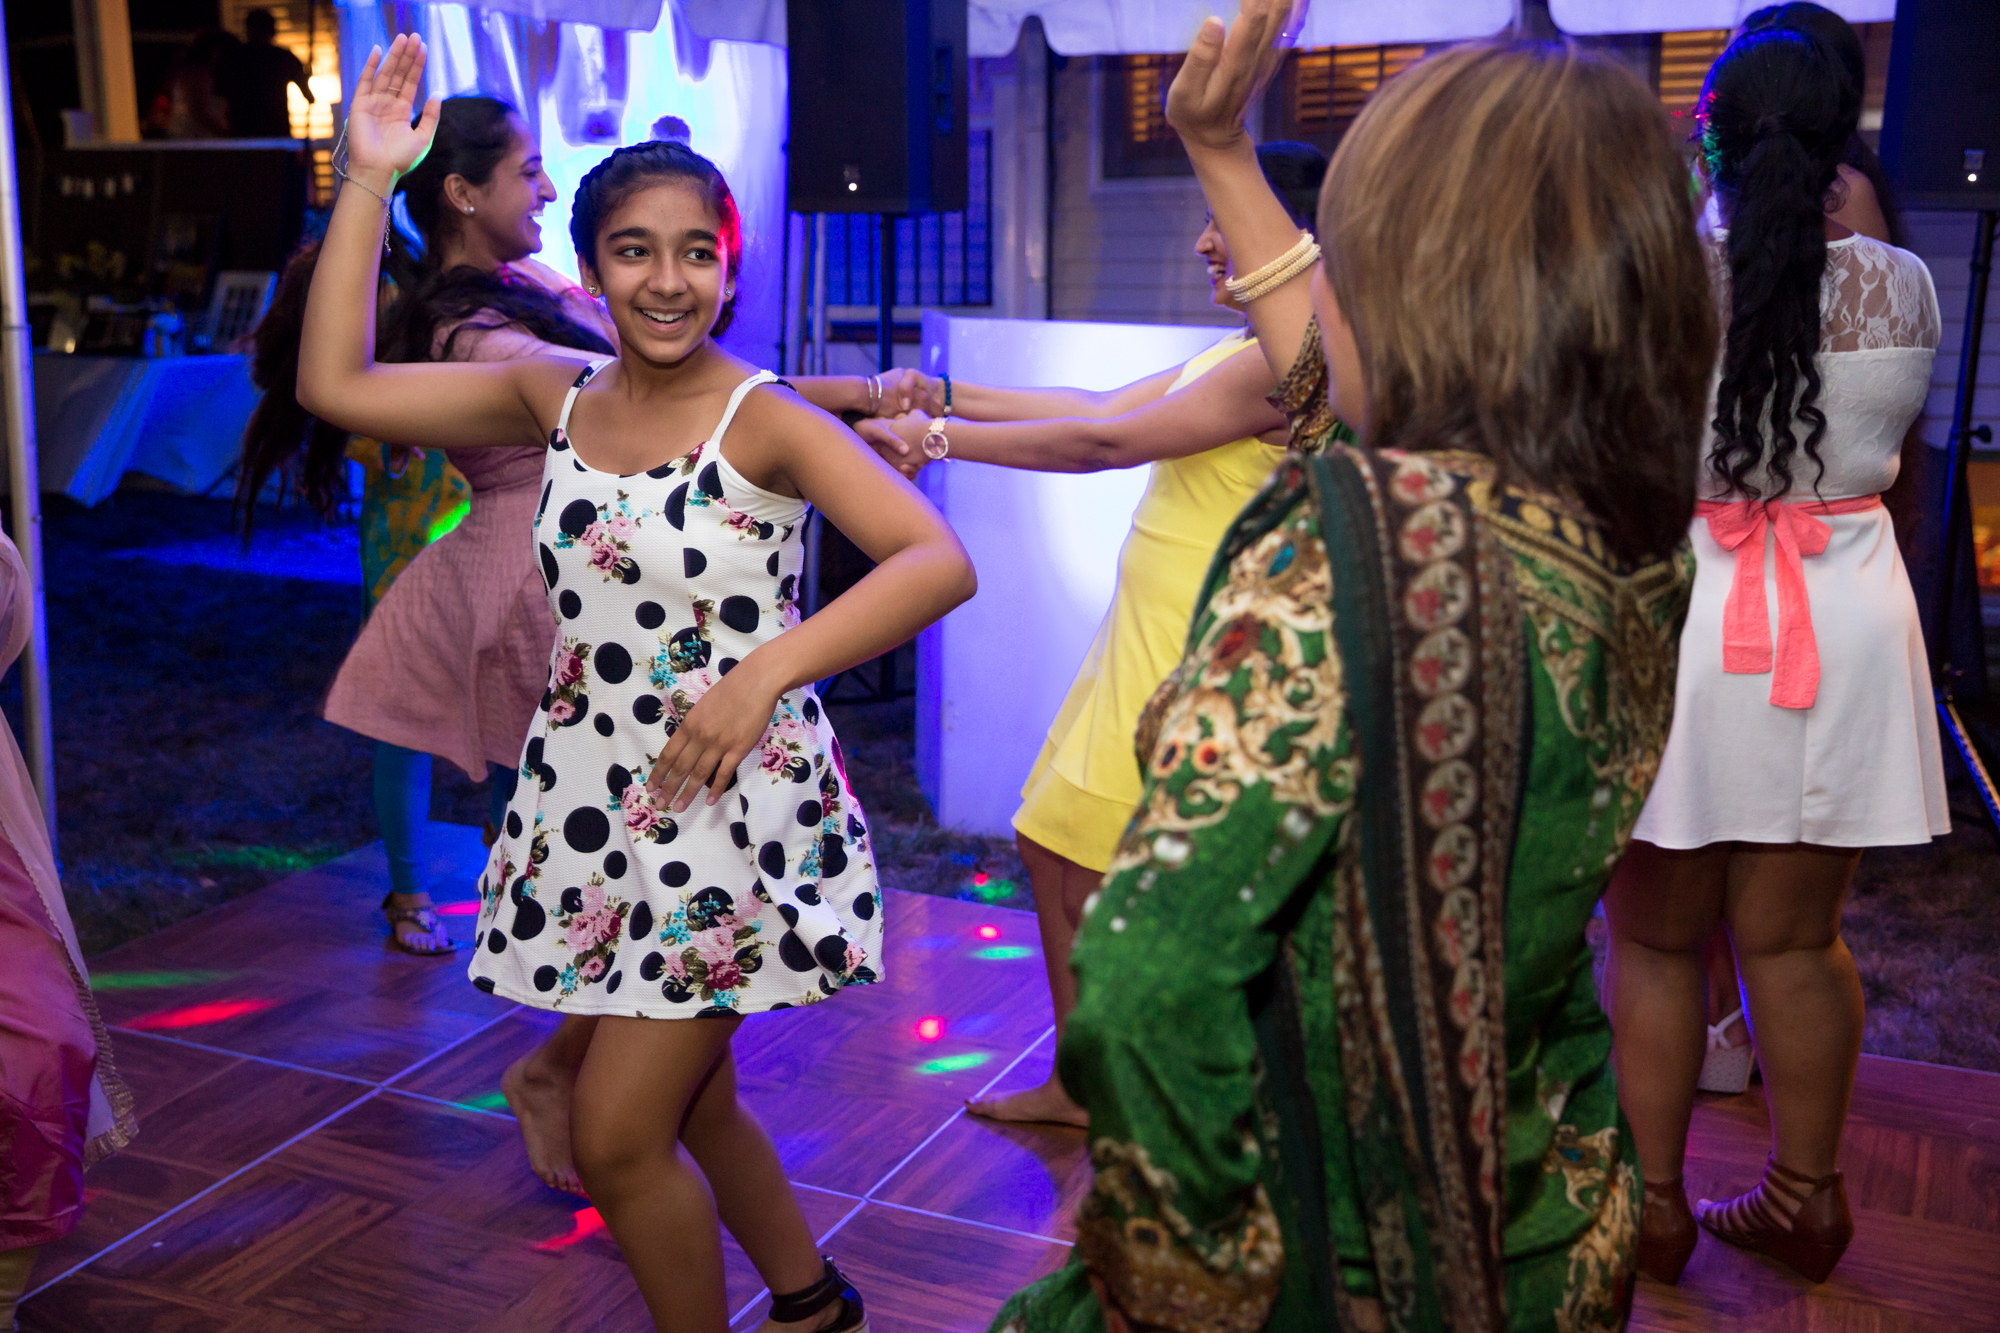 31-William Hendra Photography Singh Graduation Party.jpg